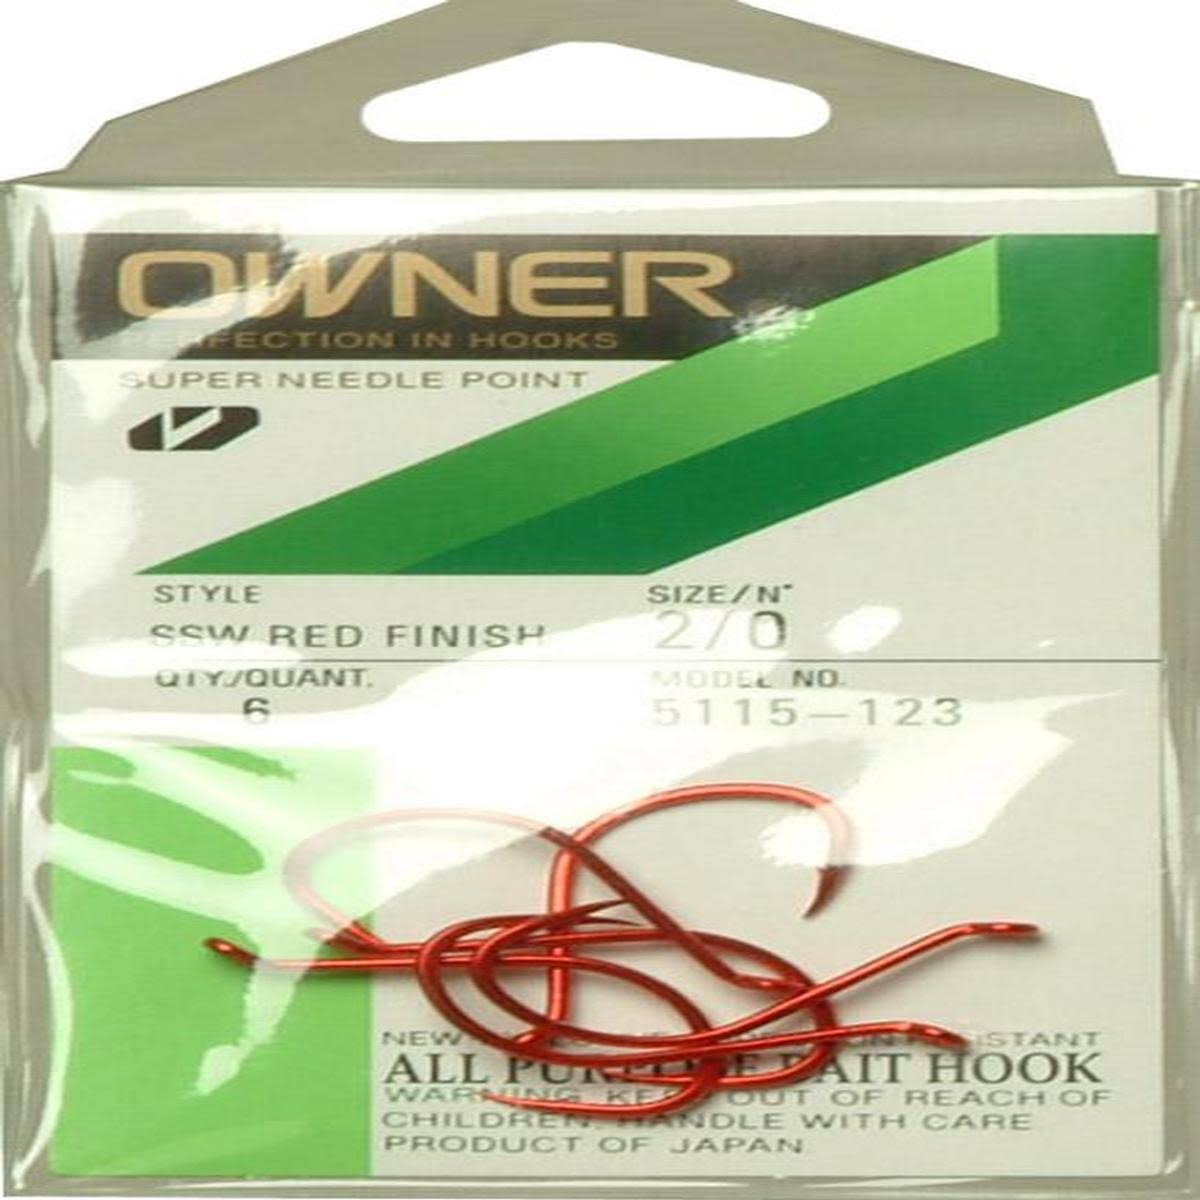 Owner SSW Super Needle Point Hooks - Red, #2/0